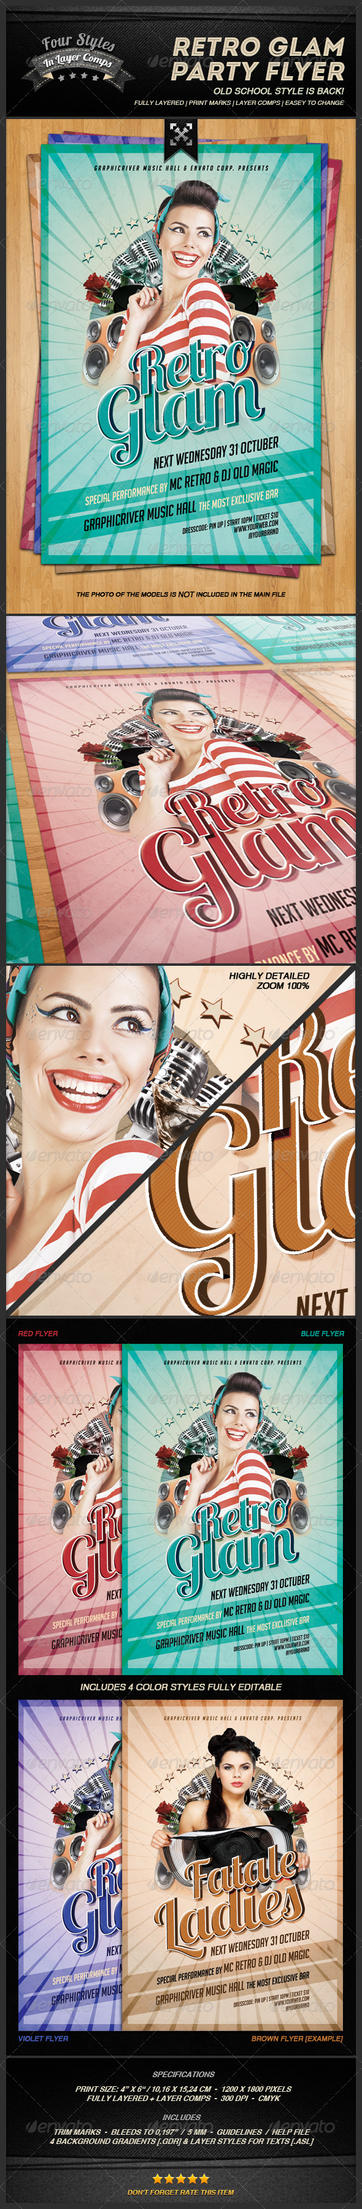 GraphicRiver - Retro Glam Party Flyer by lhexificator